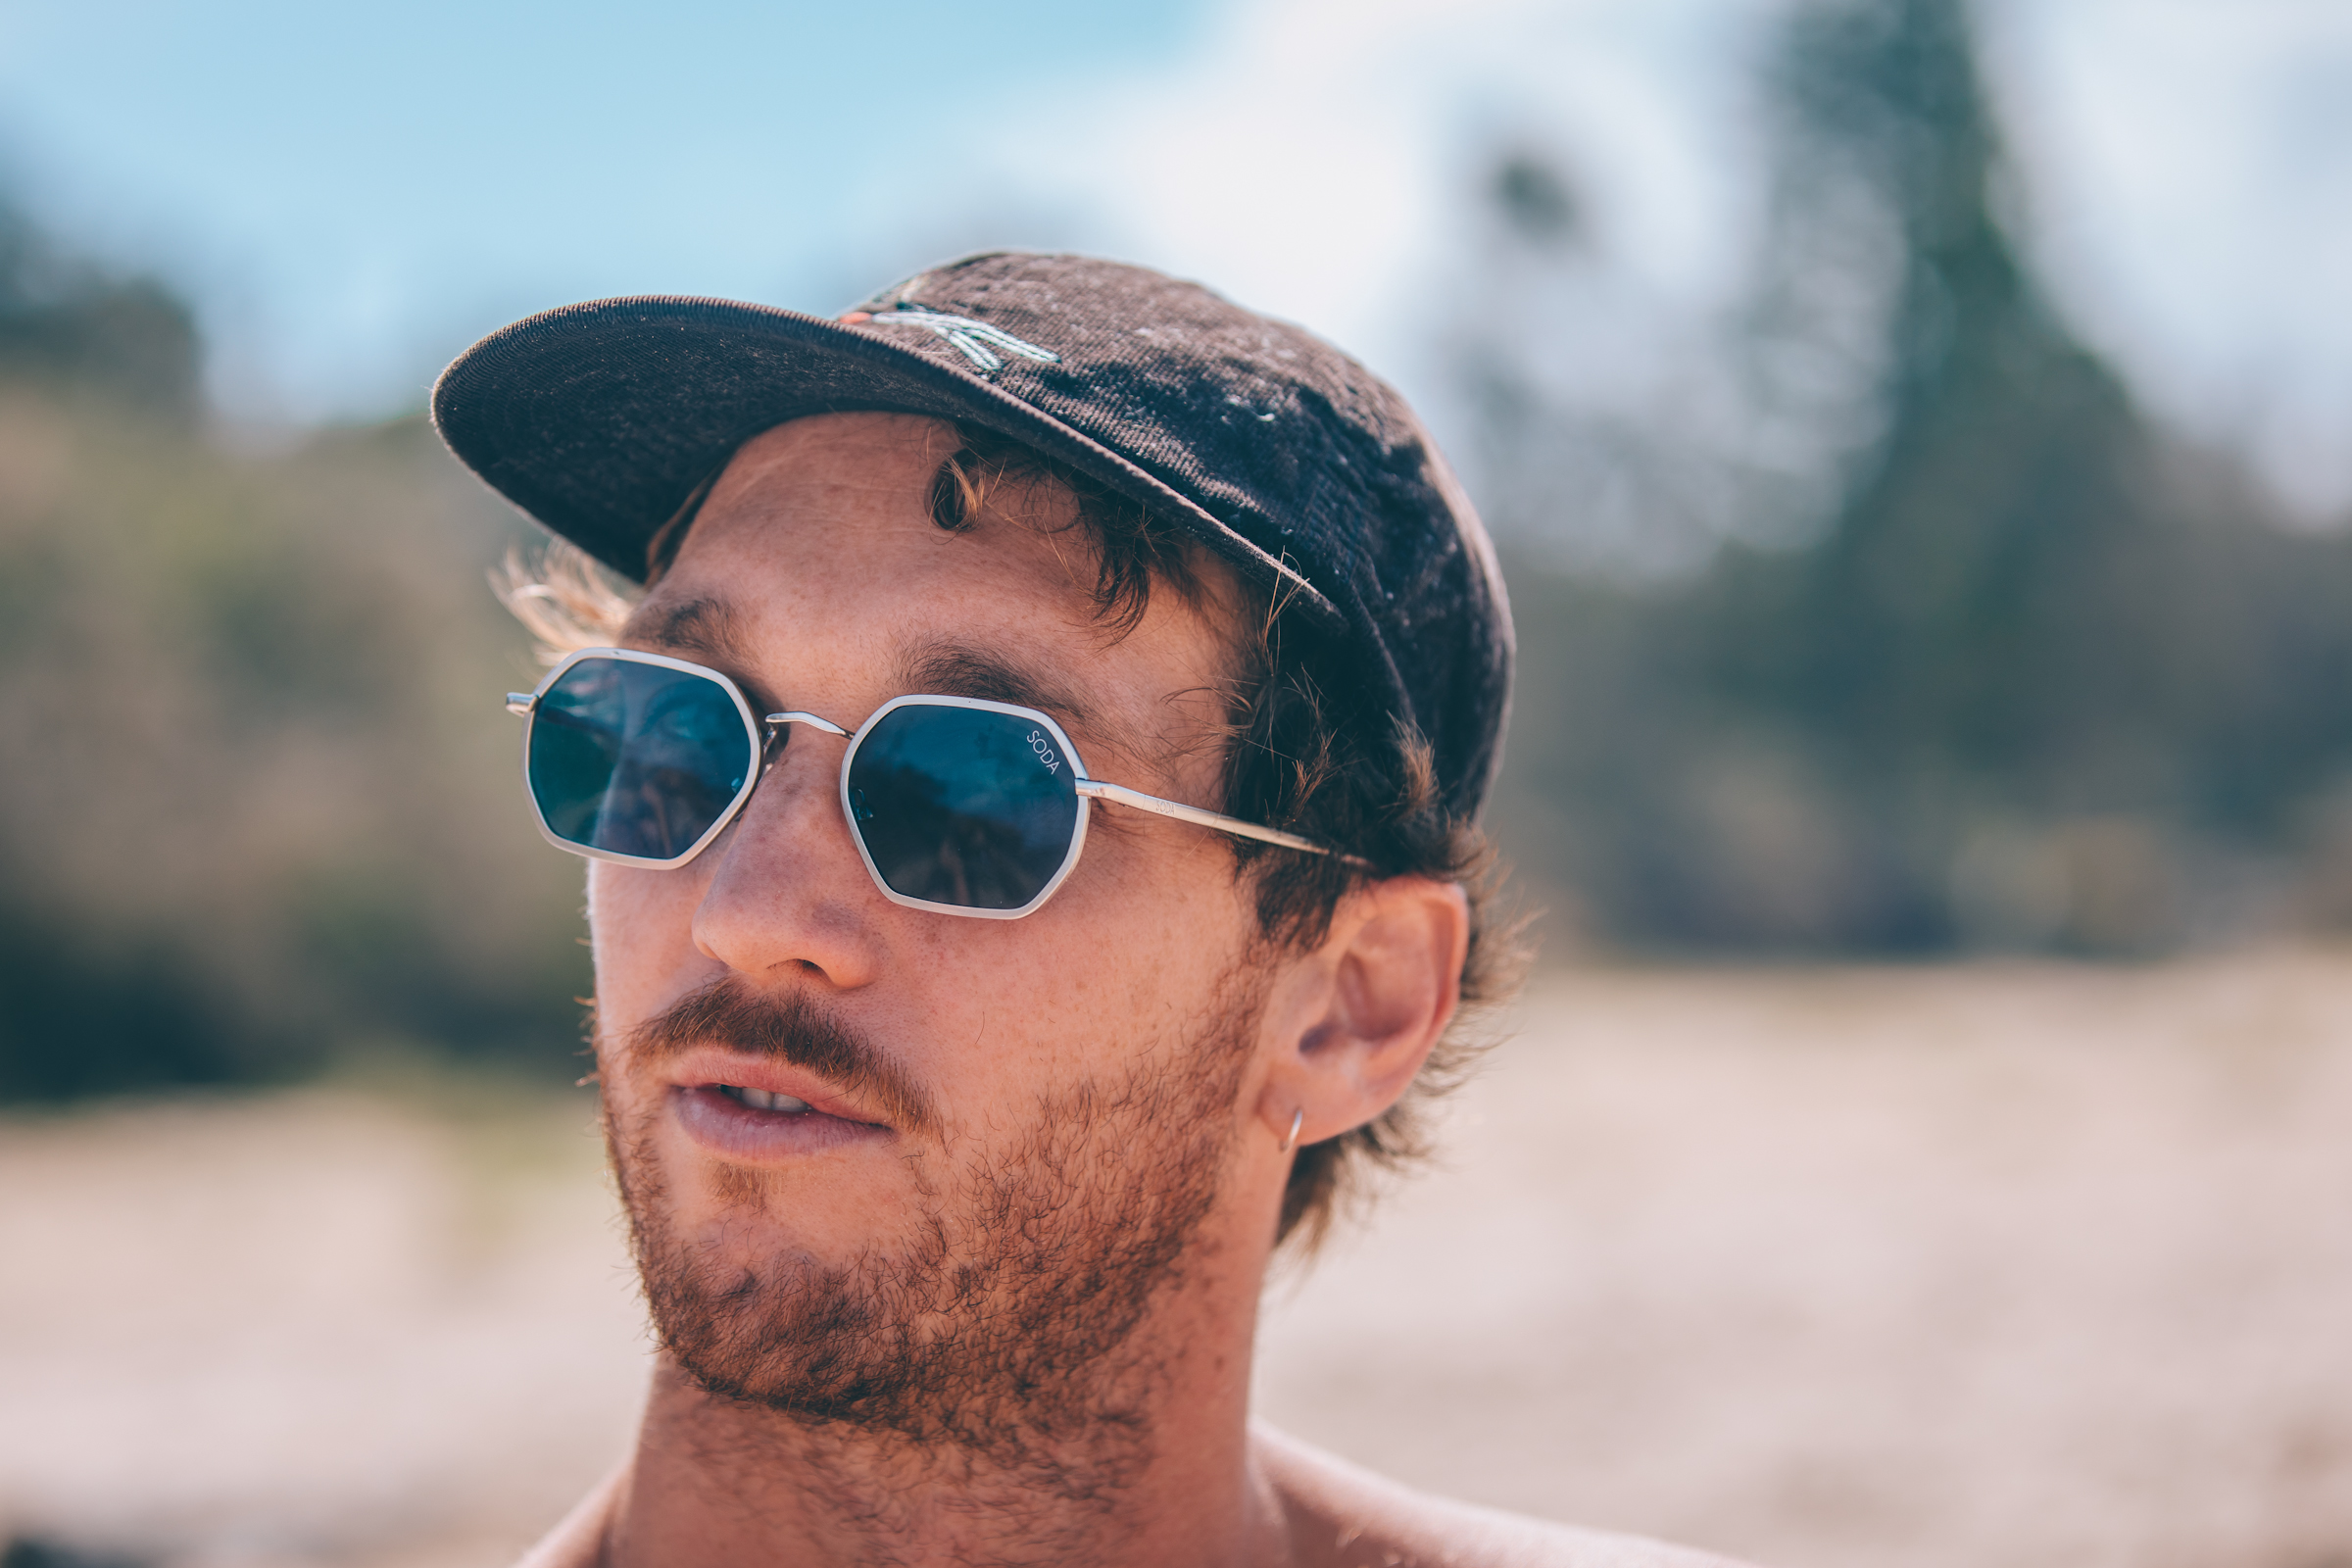 Soda Shades of Summer Eyewear Sunglasses Welcome to Summer Campaign Polarized Australia-48